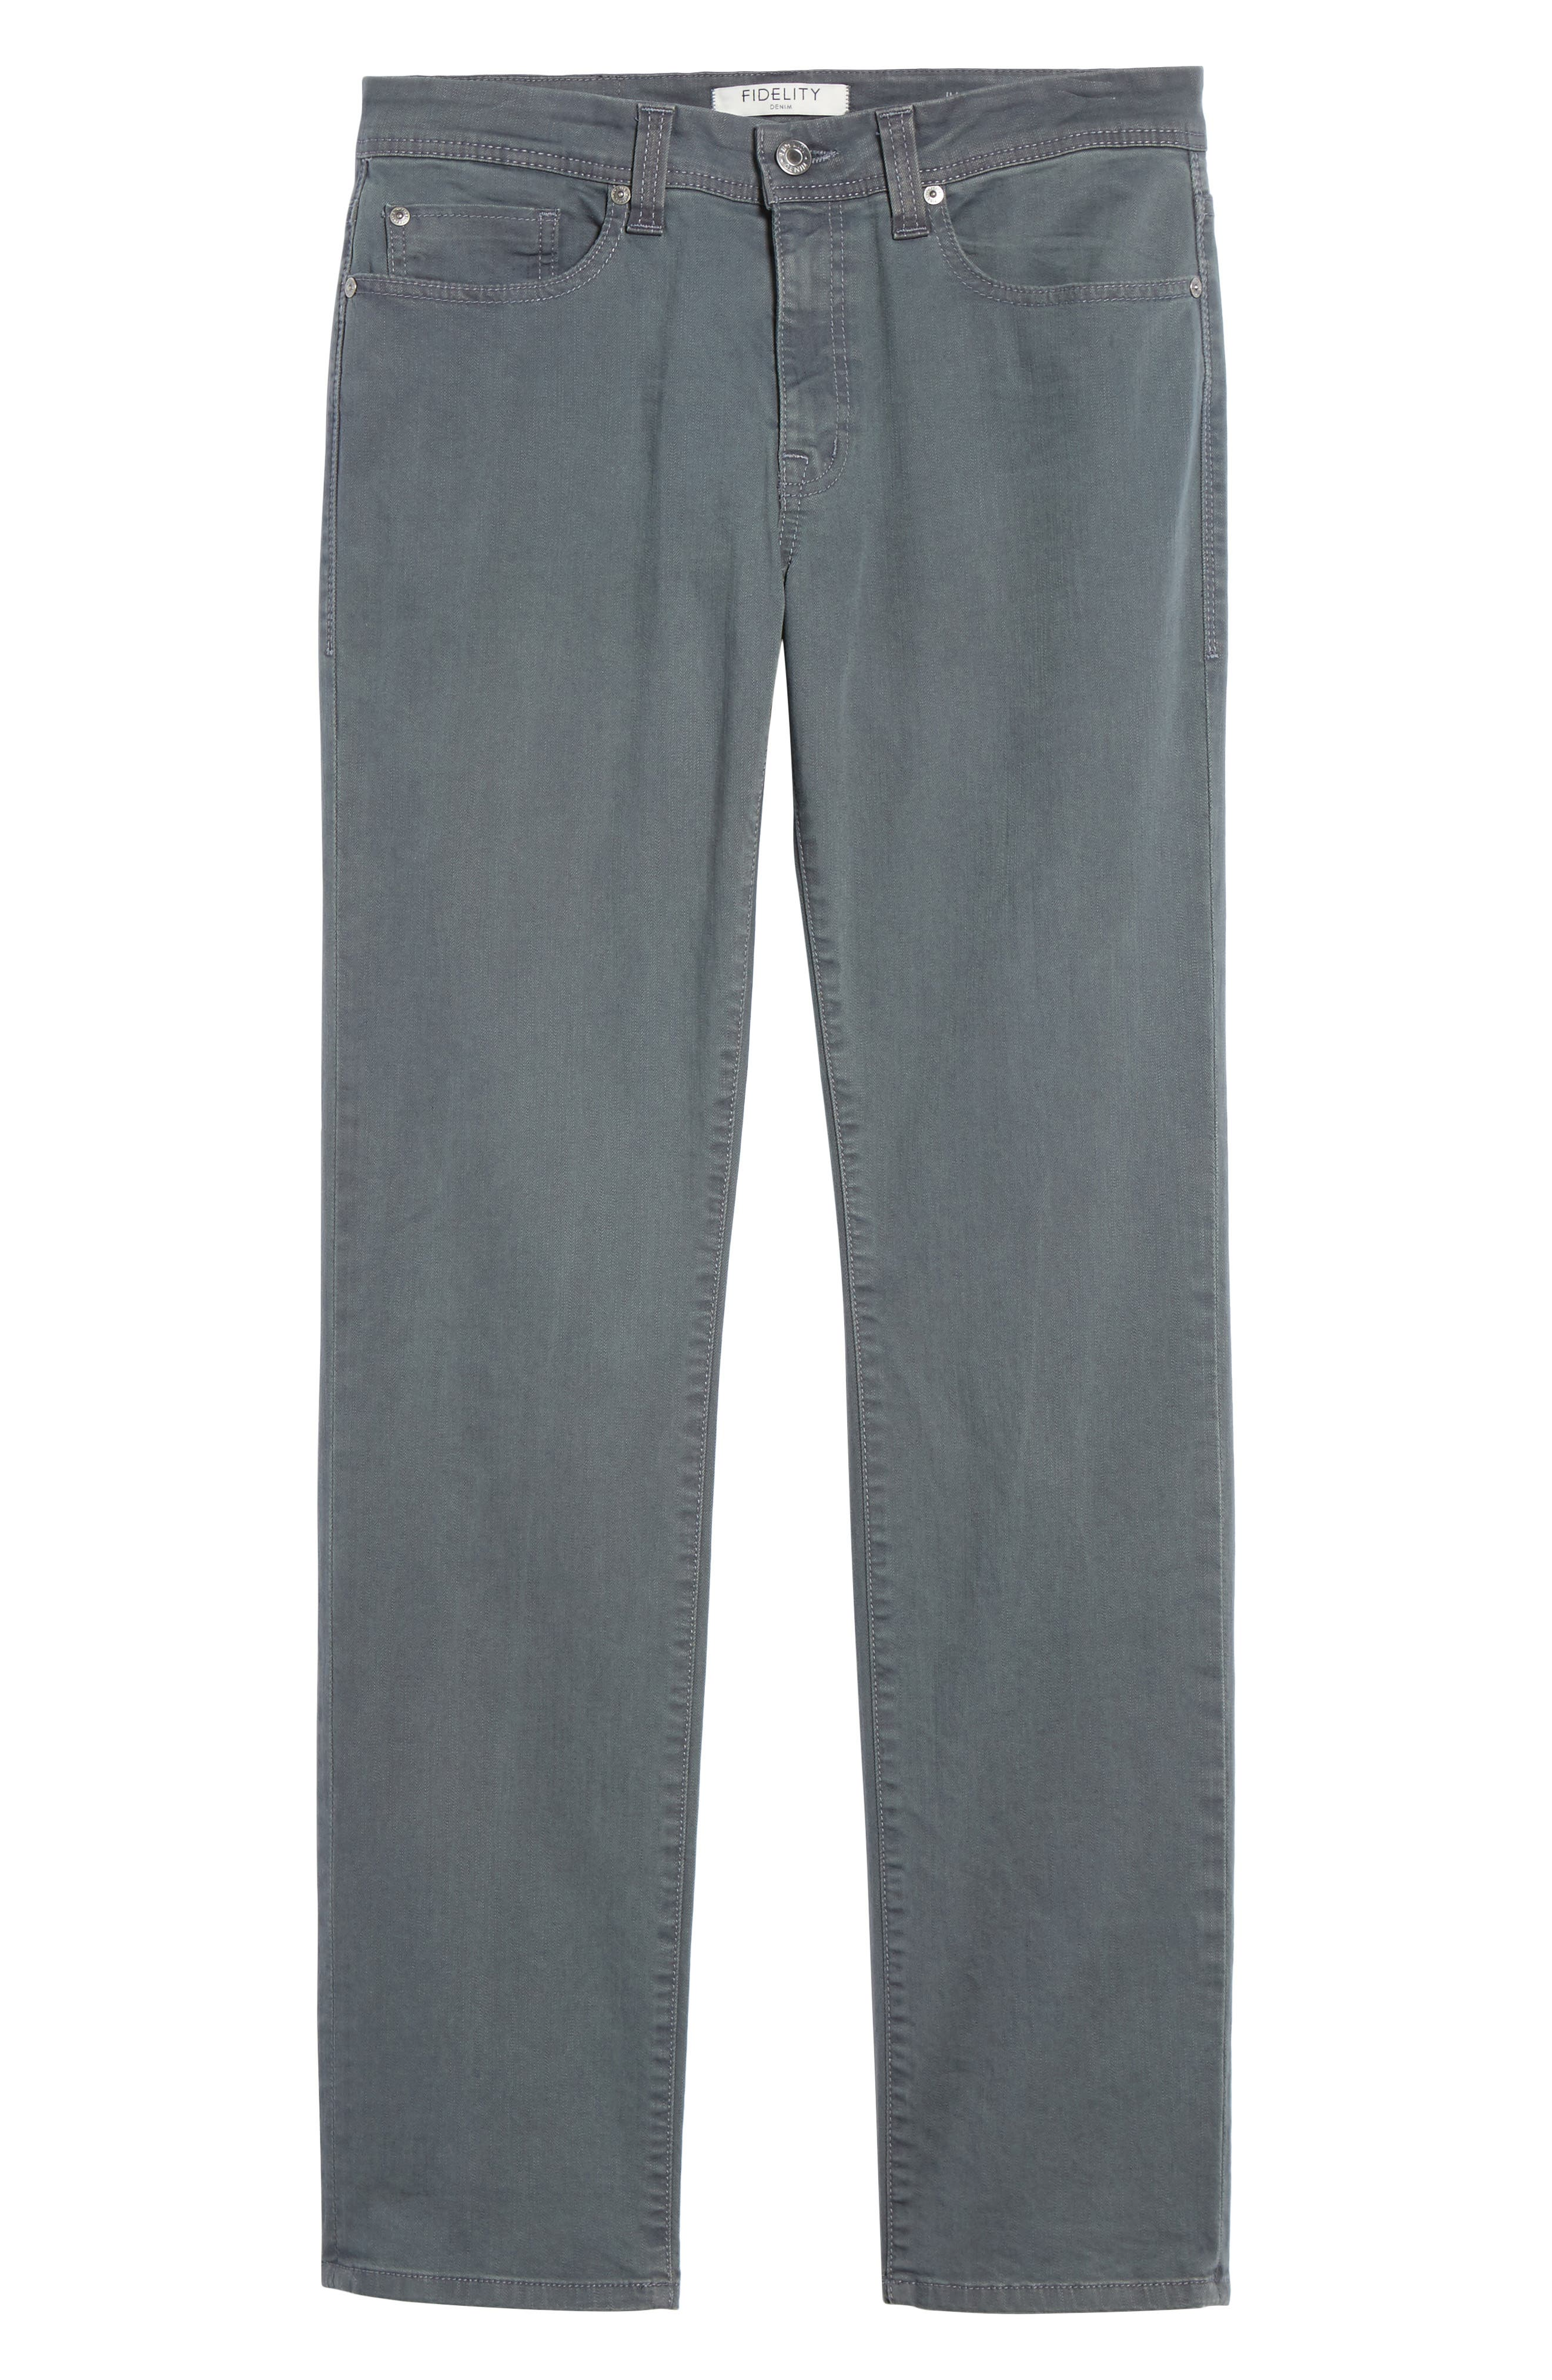 Jimmy Slim Straight Fit Jeans,                             Alternate thumbnail 6, color,                             Oyster